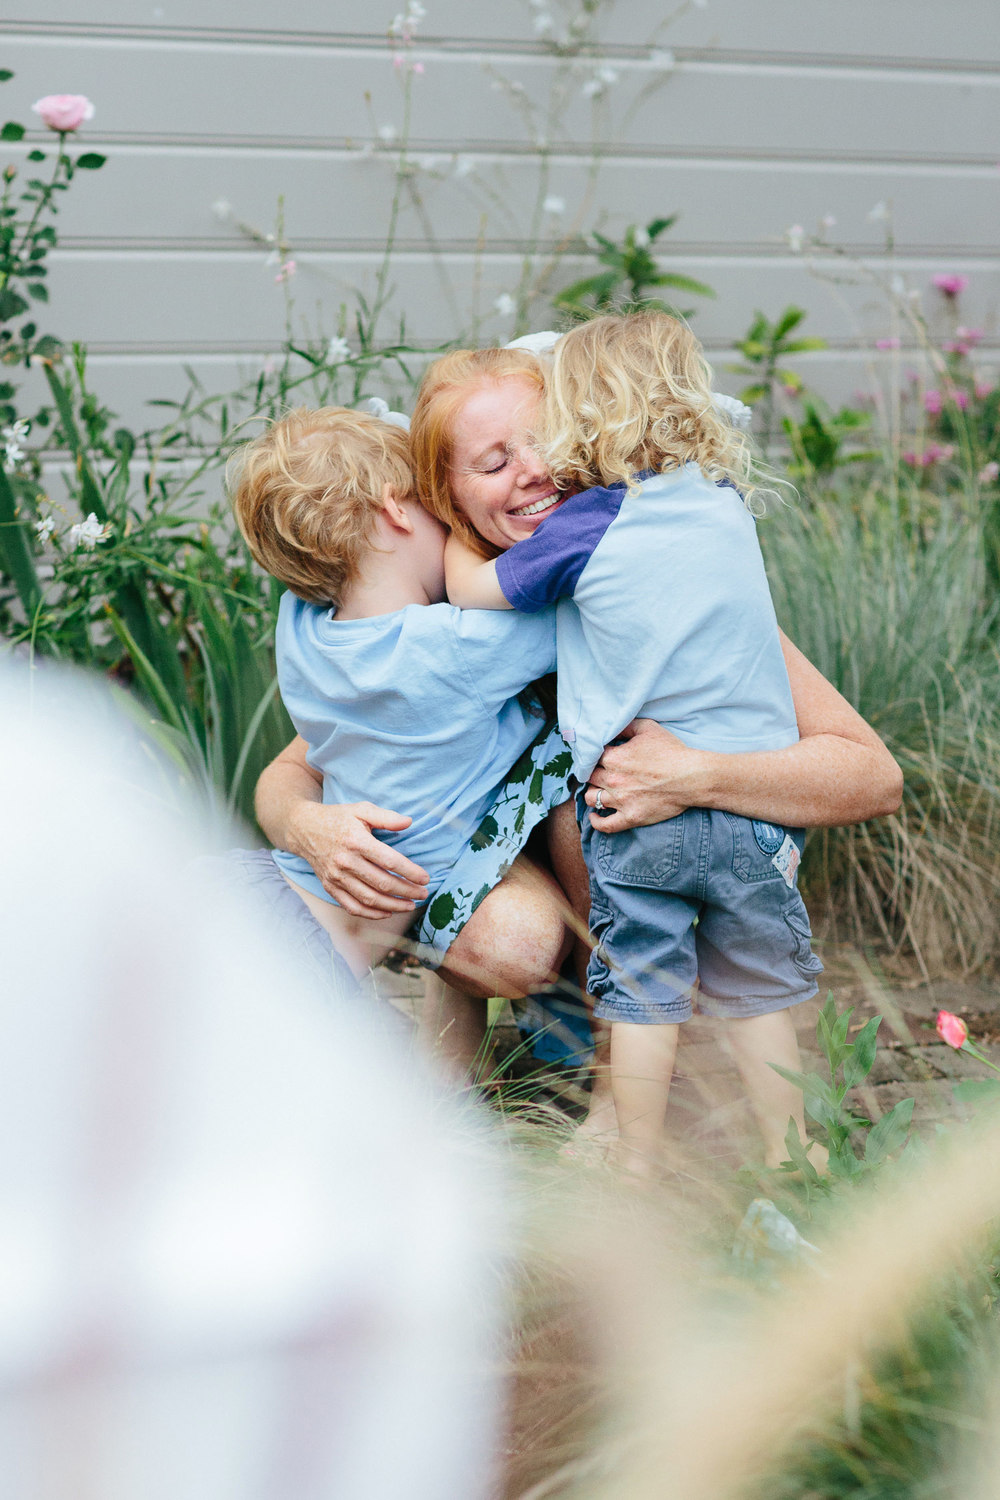 Candid-family-photographer-Central-Coast-3.jpg